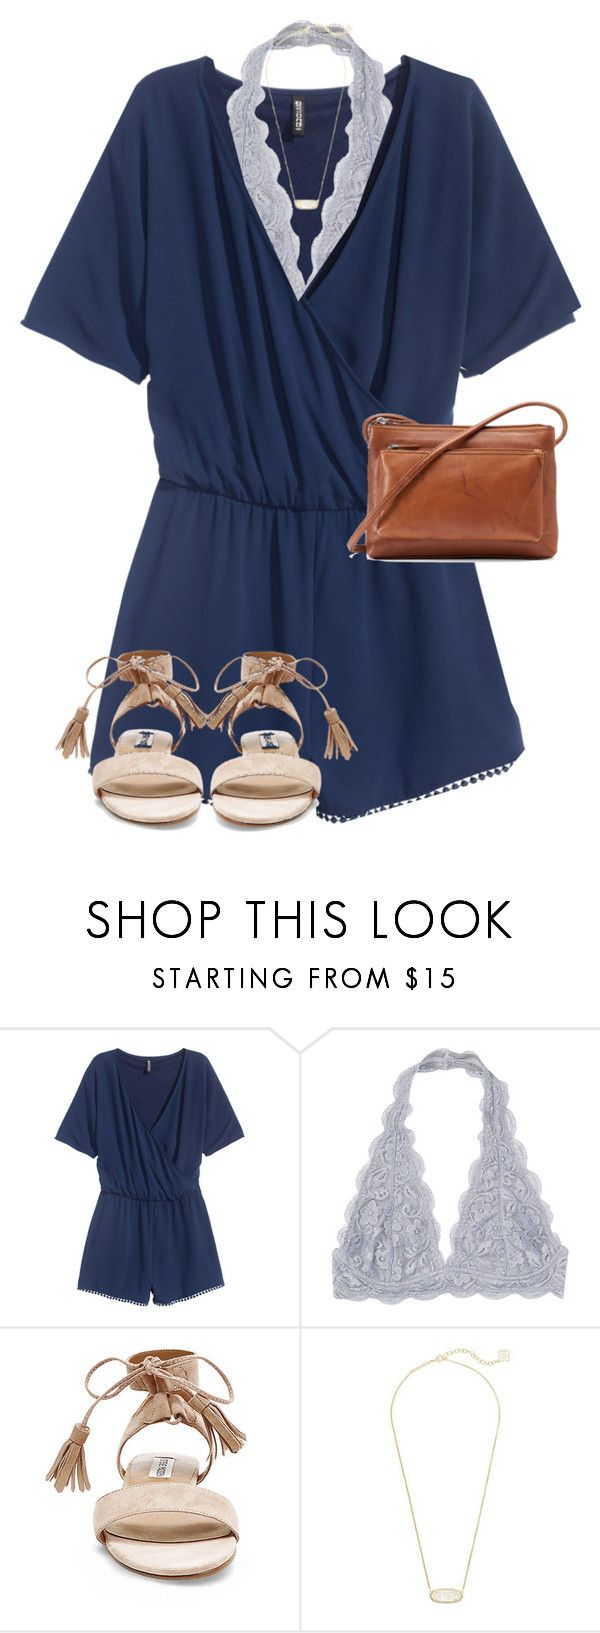 """I'm overly excited about this warm weather"" by mallorykennerly ❤ liked on Polyvore featuring H&M, Steve Madden, Kendra Scott and ILI"